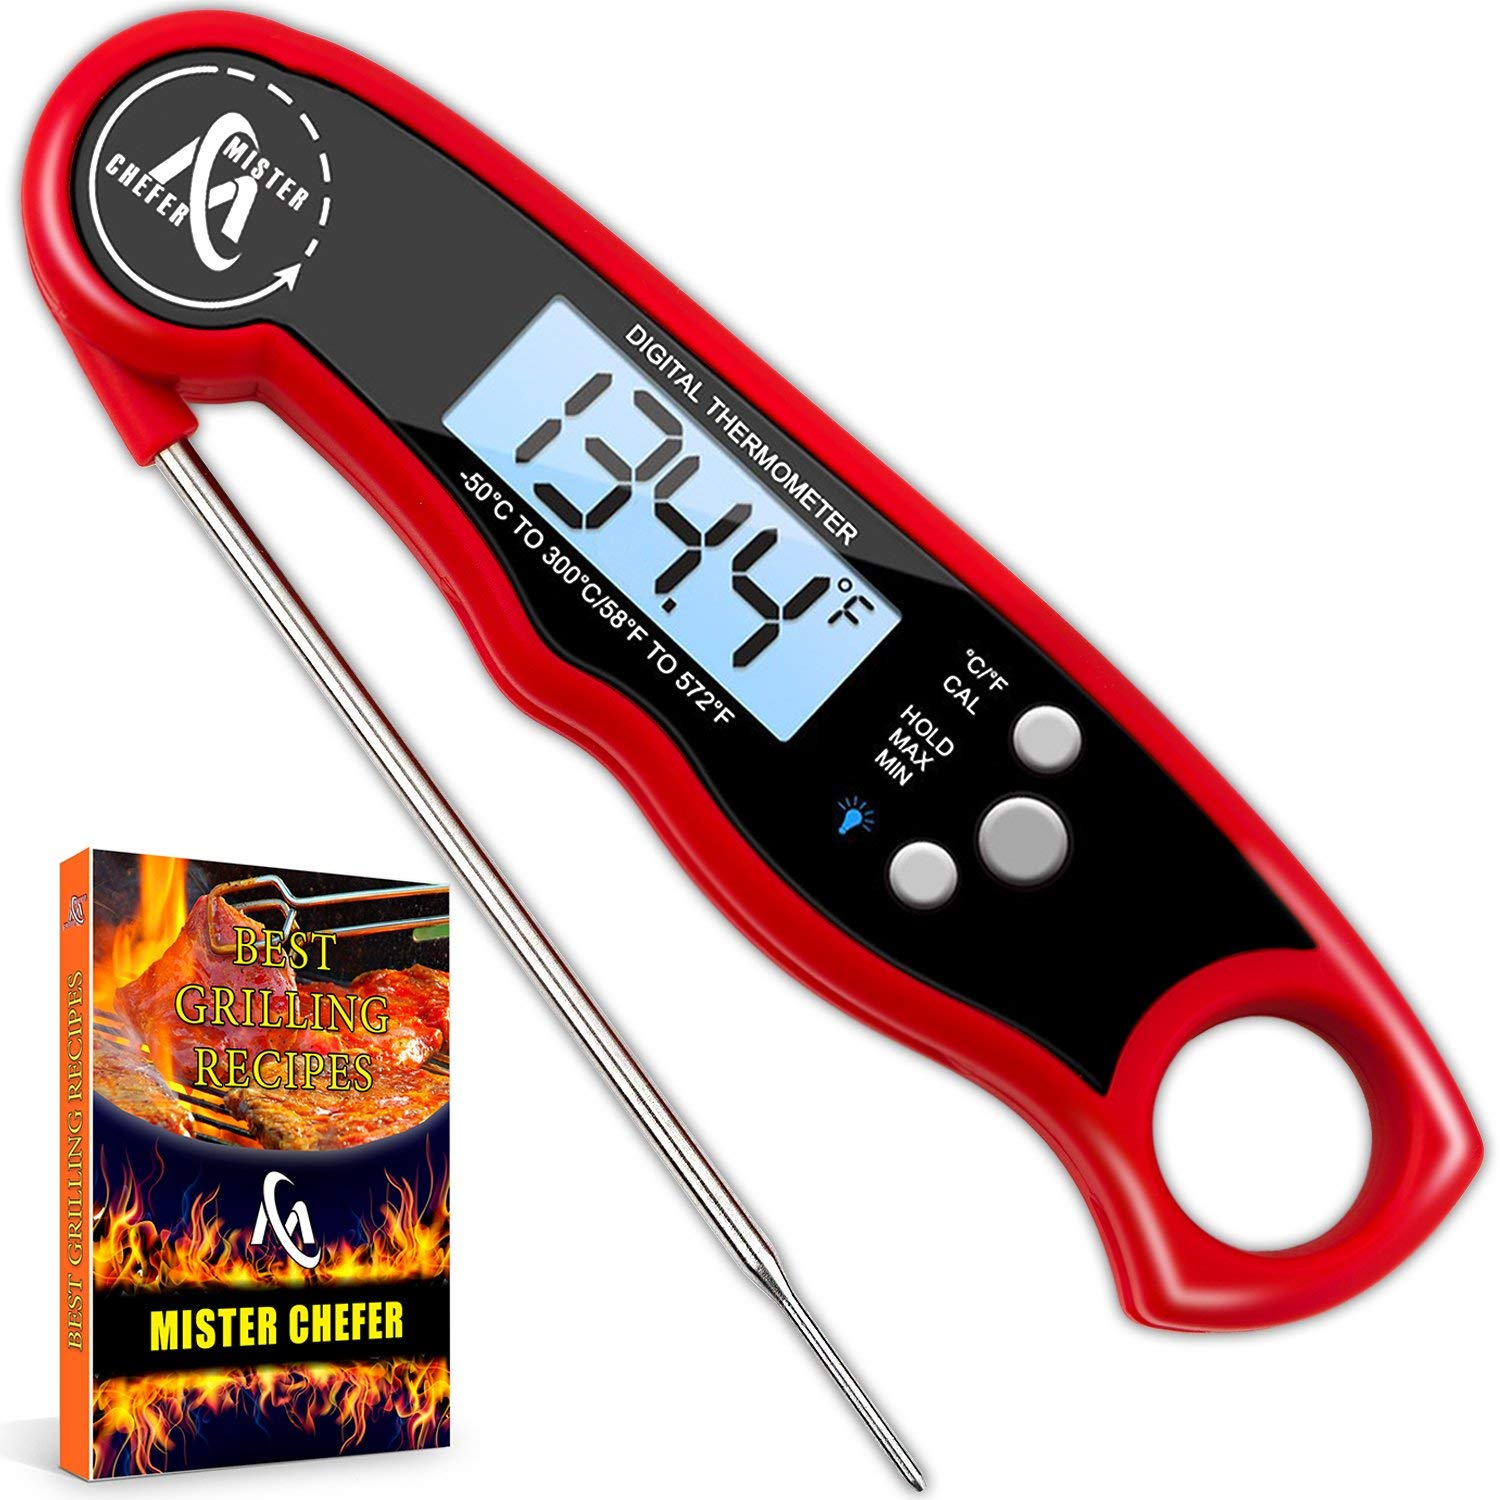 a waterproof food thermometer so you never ruin yours again